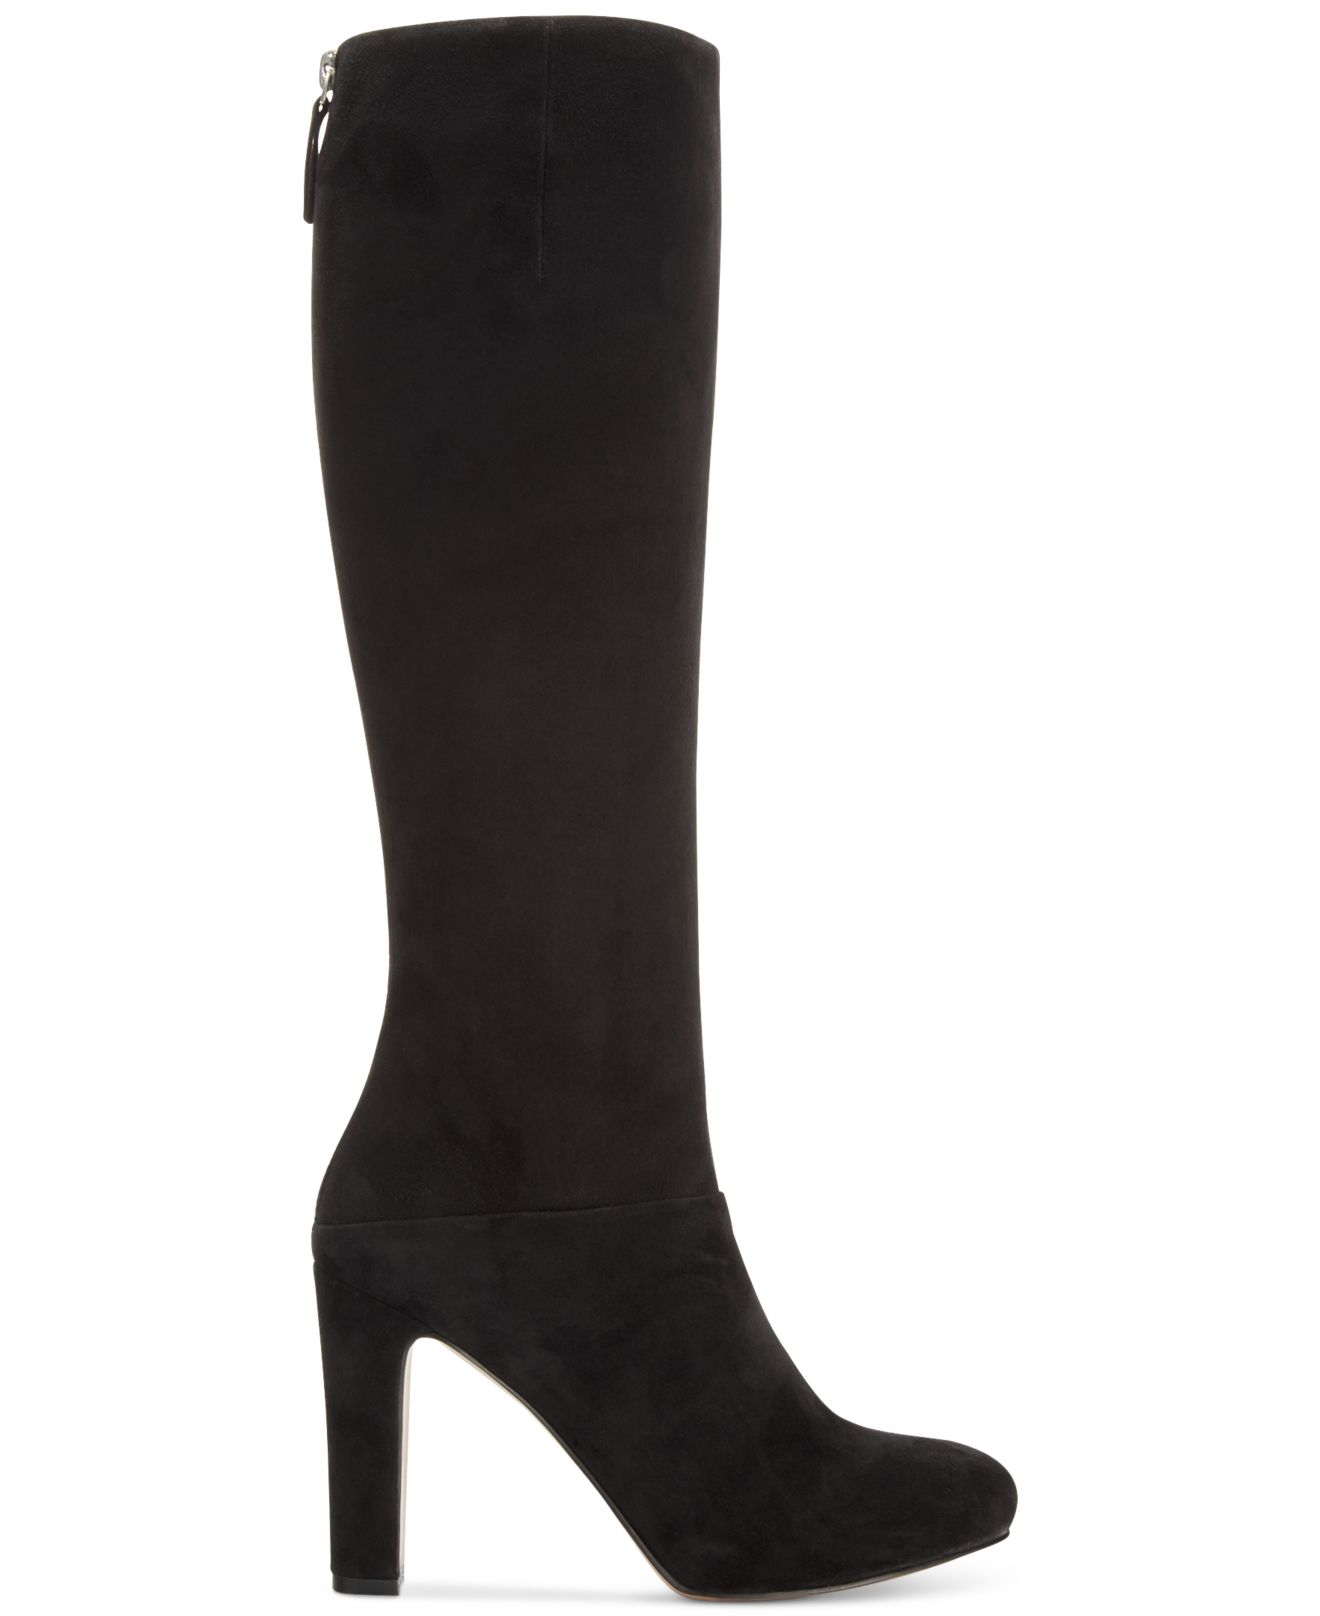 nine west gofish suede dress boots in black lyst